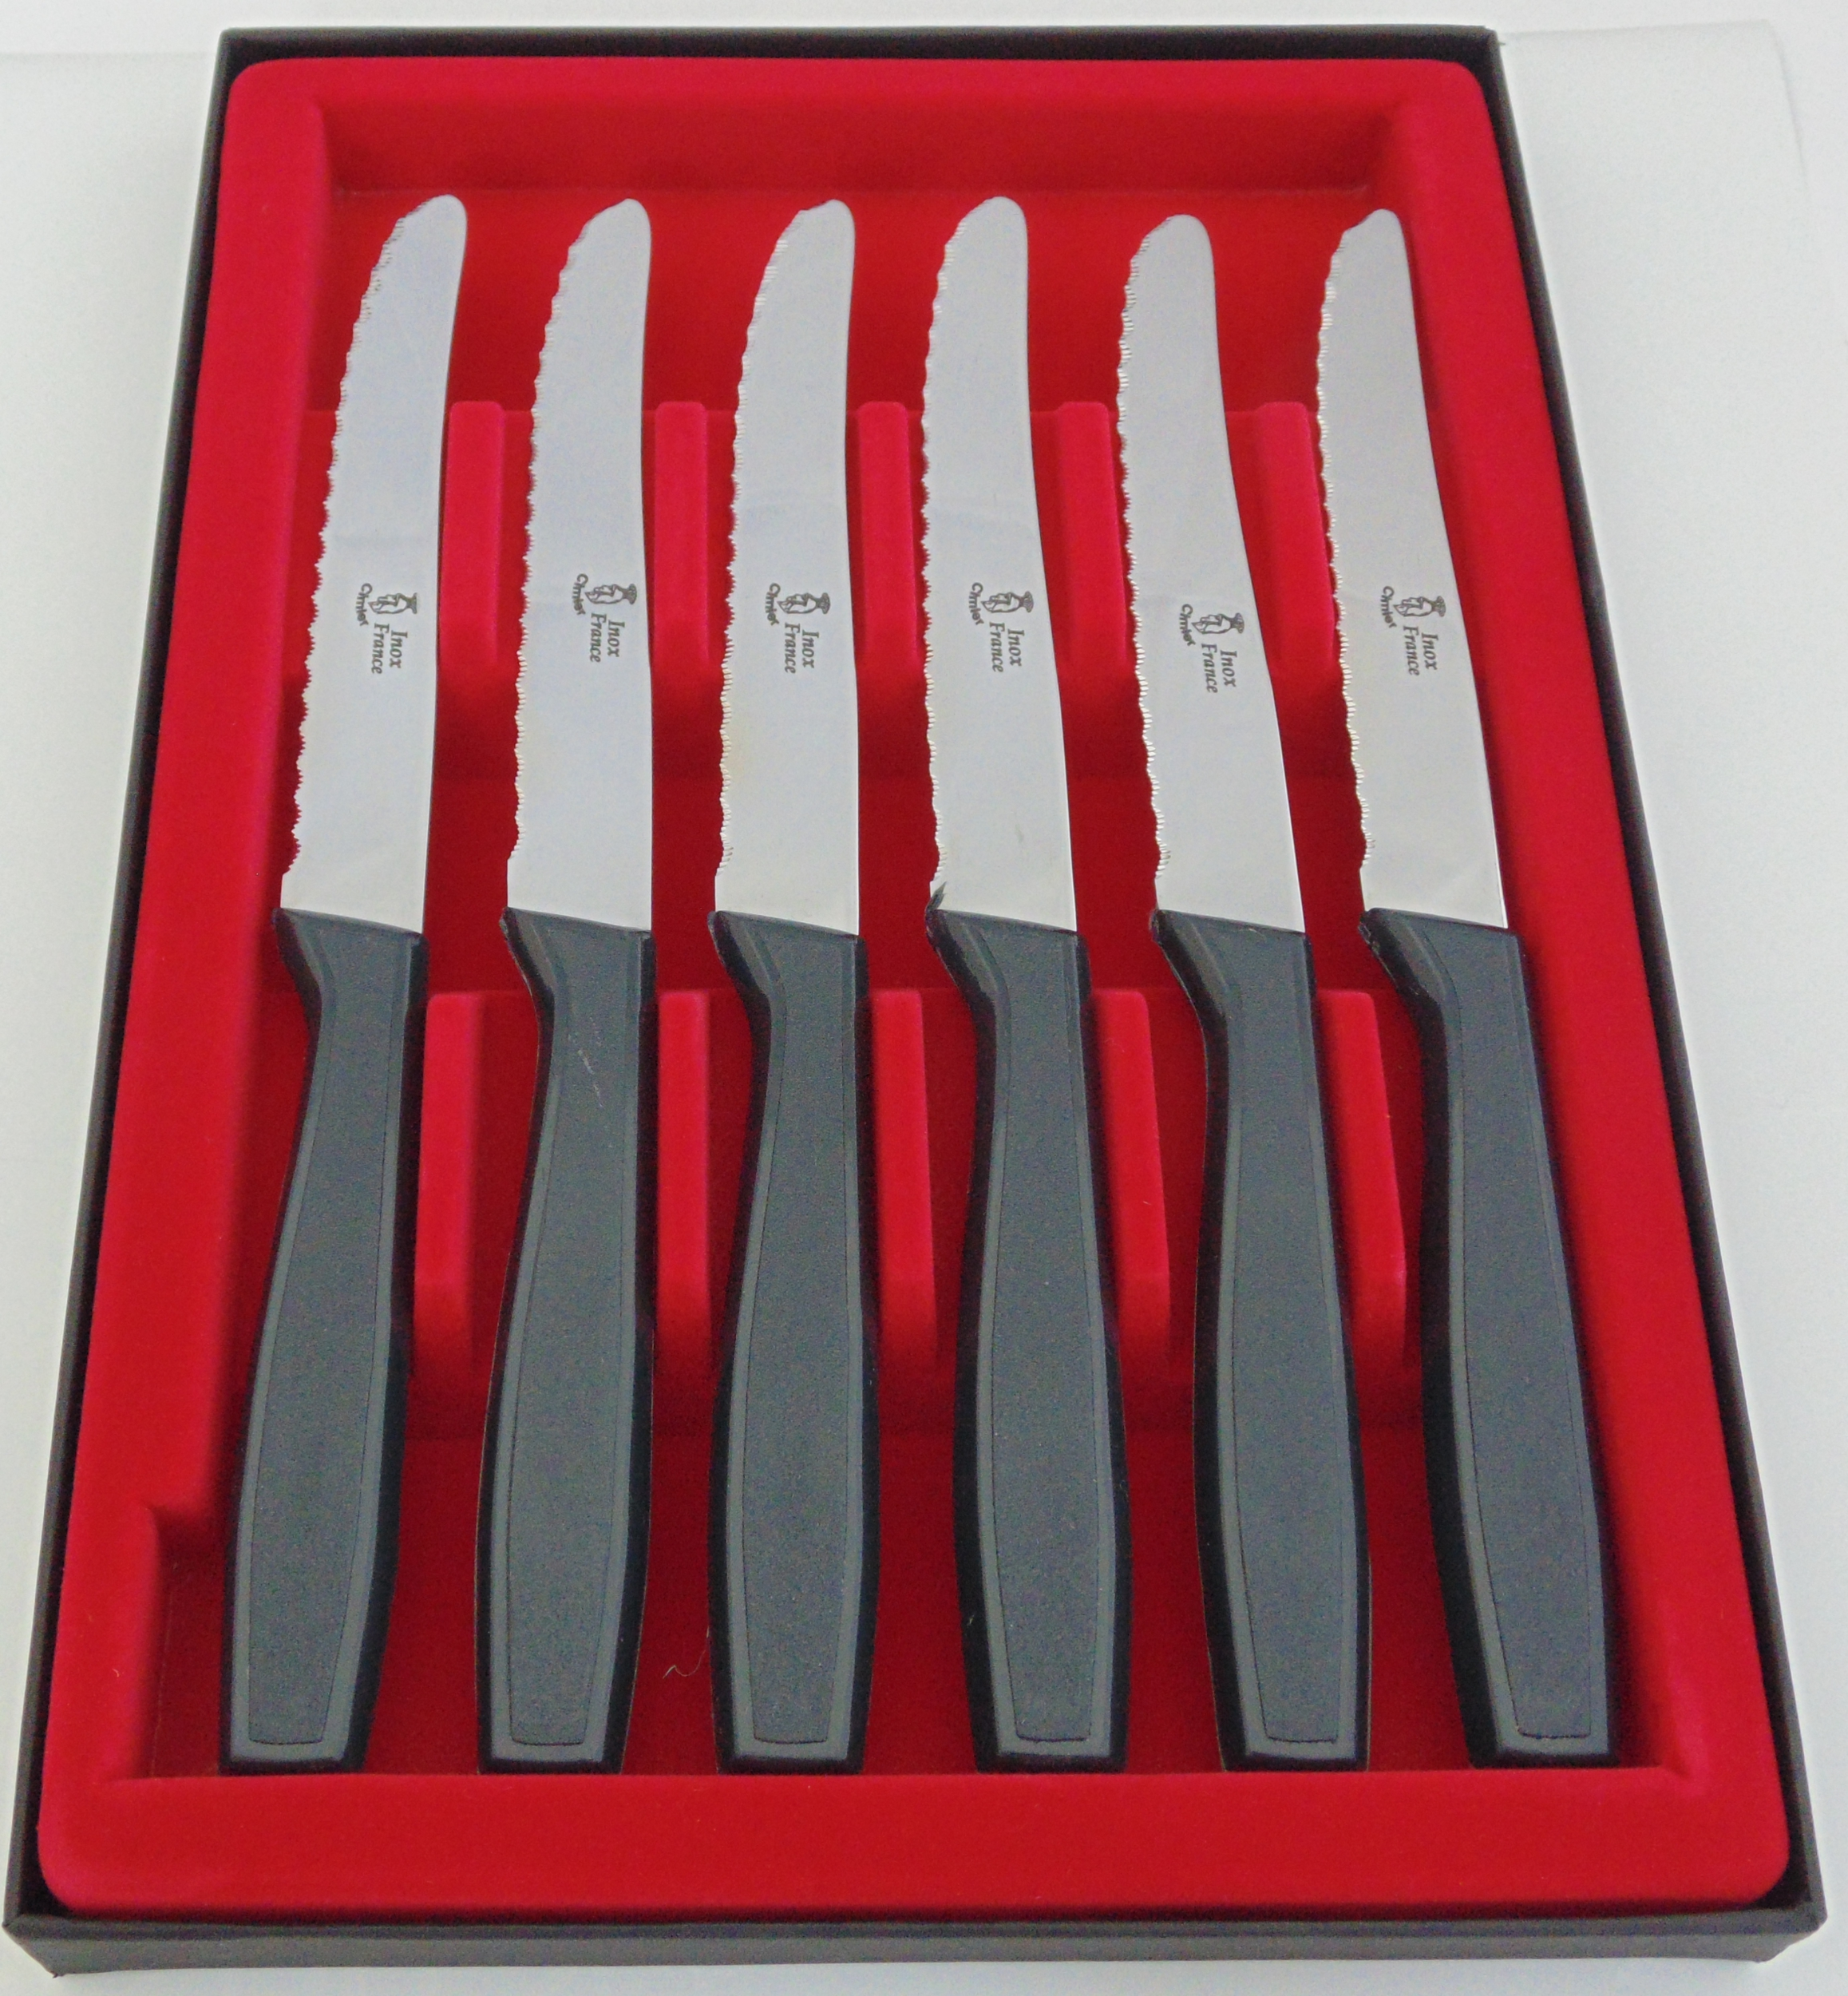 COFFRET DE 6 COUTEAUX TABLE STEAK GRIS